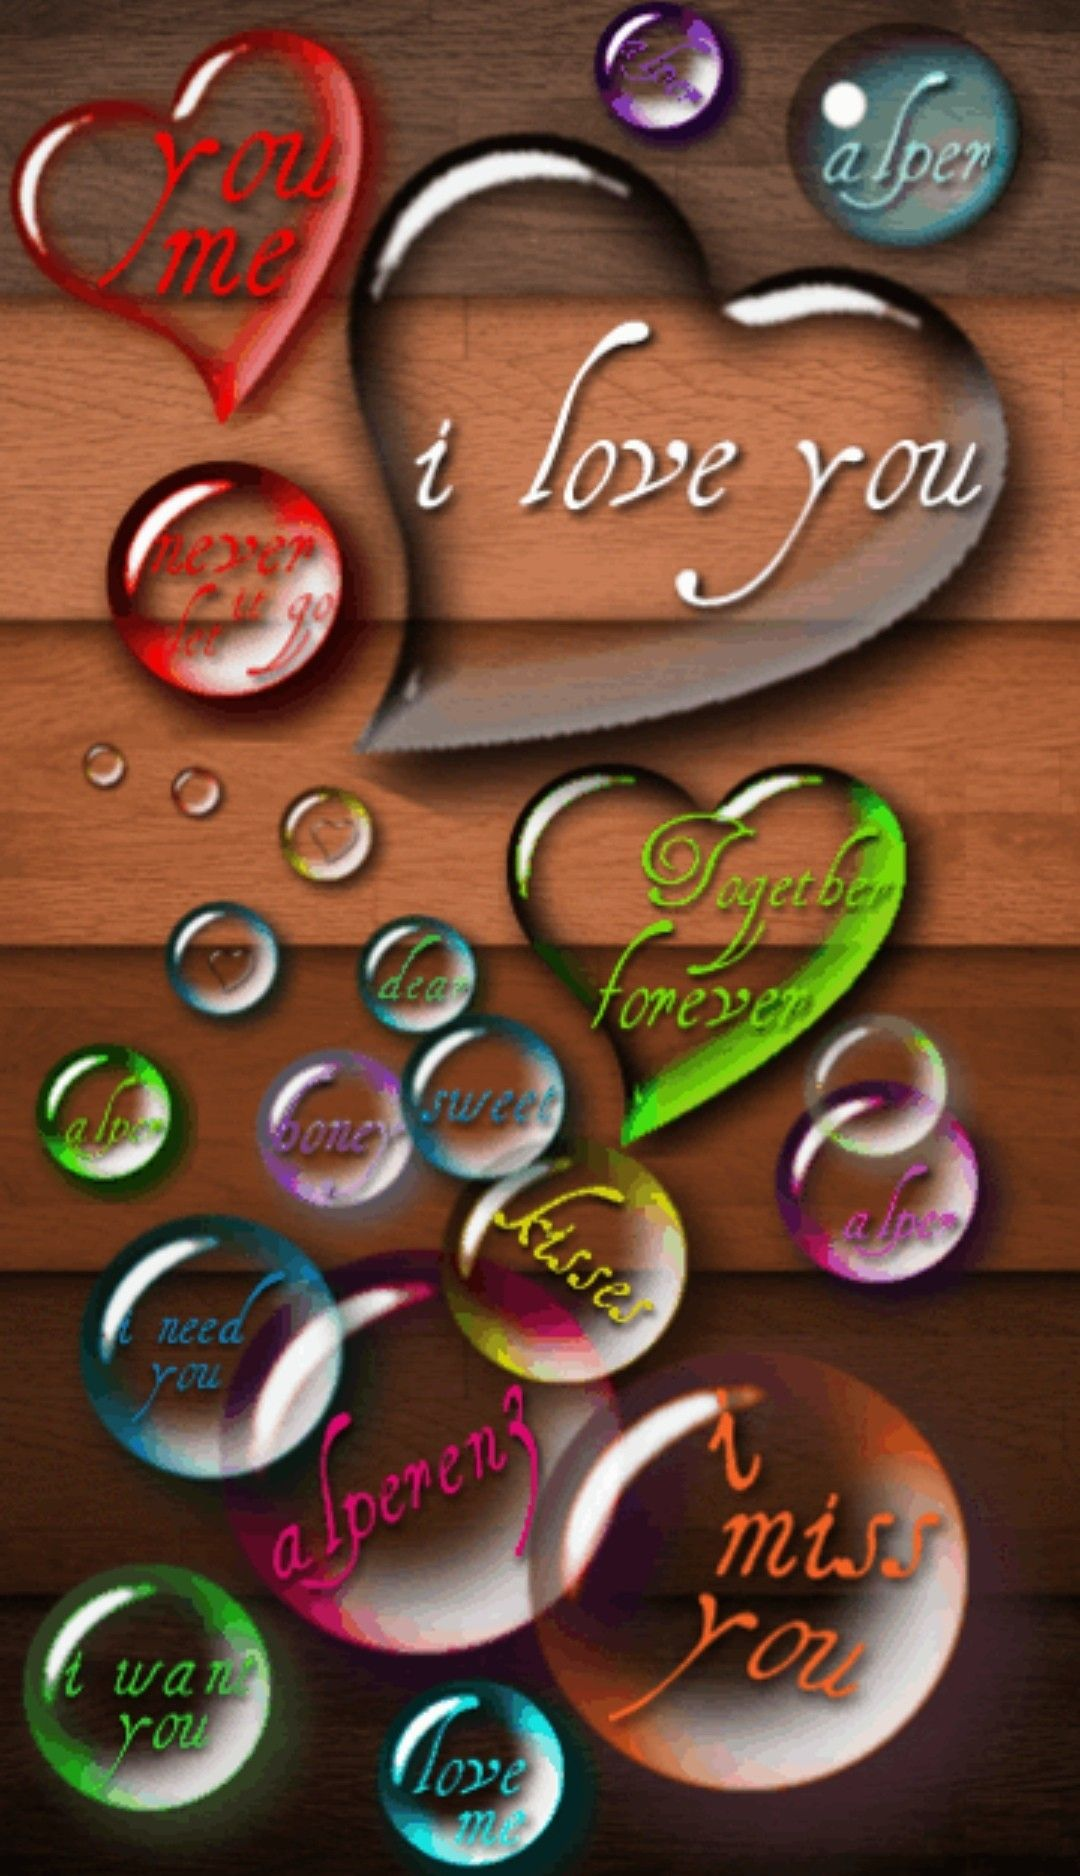 Pin By Aoku On Art Love Wallpaper For Mobile Full Hd Love